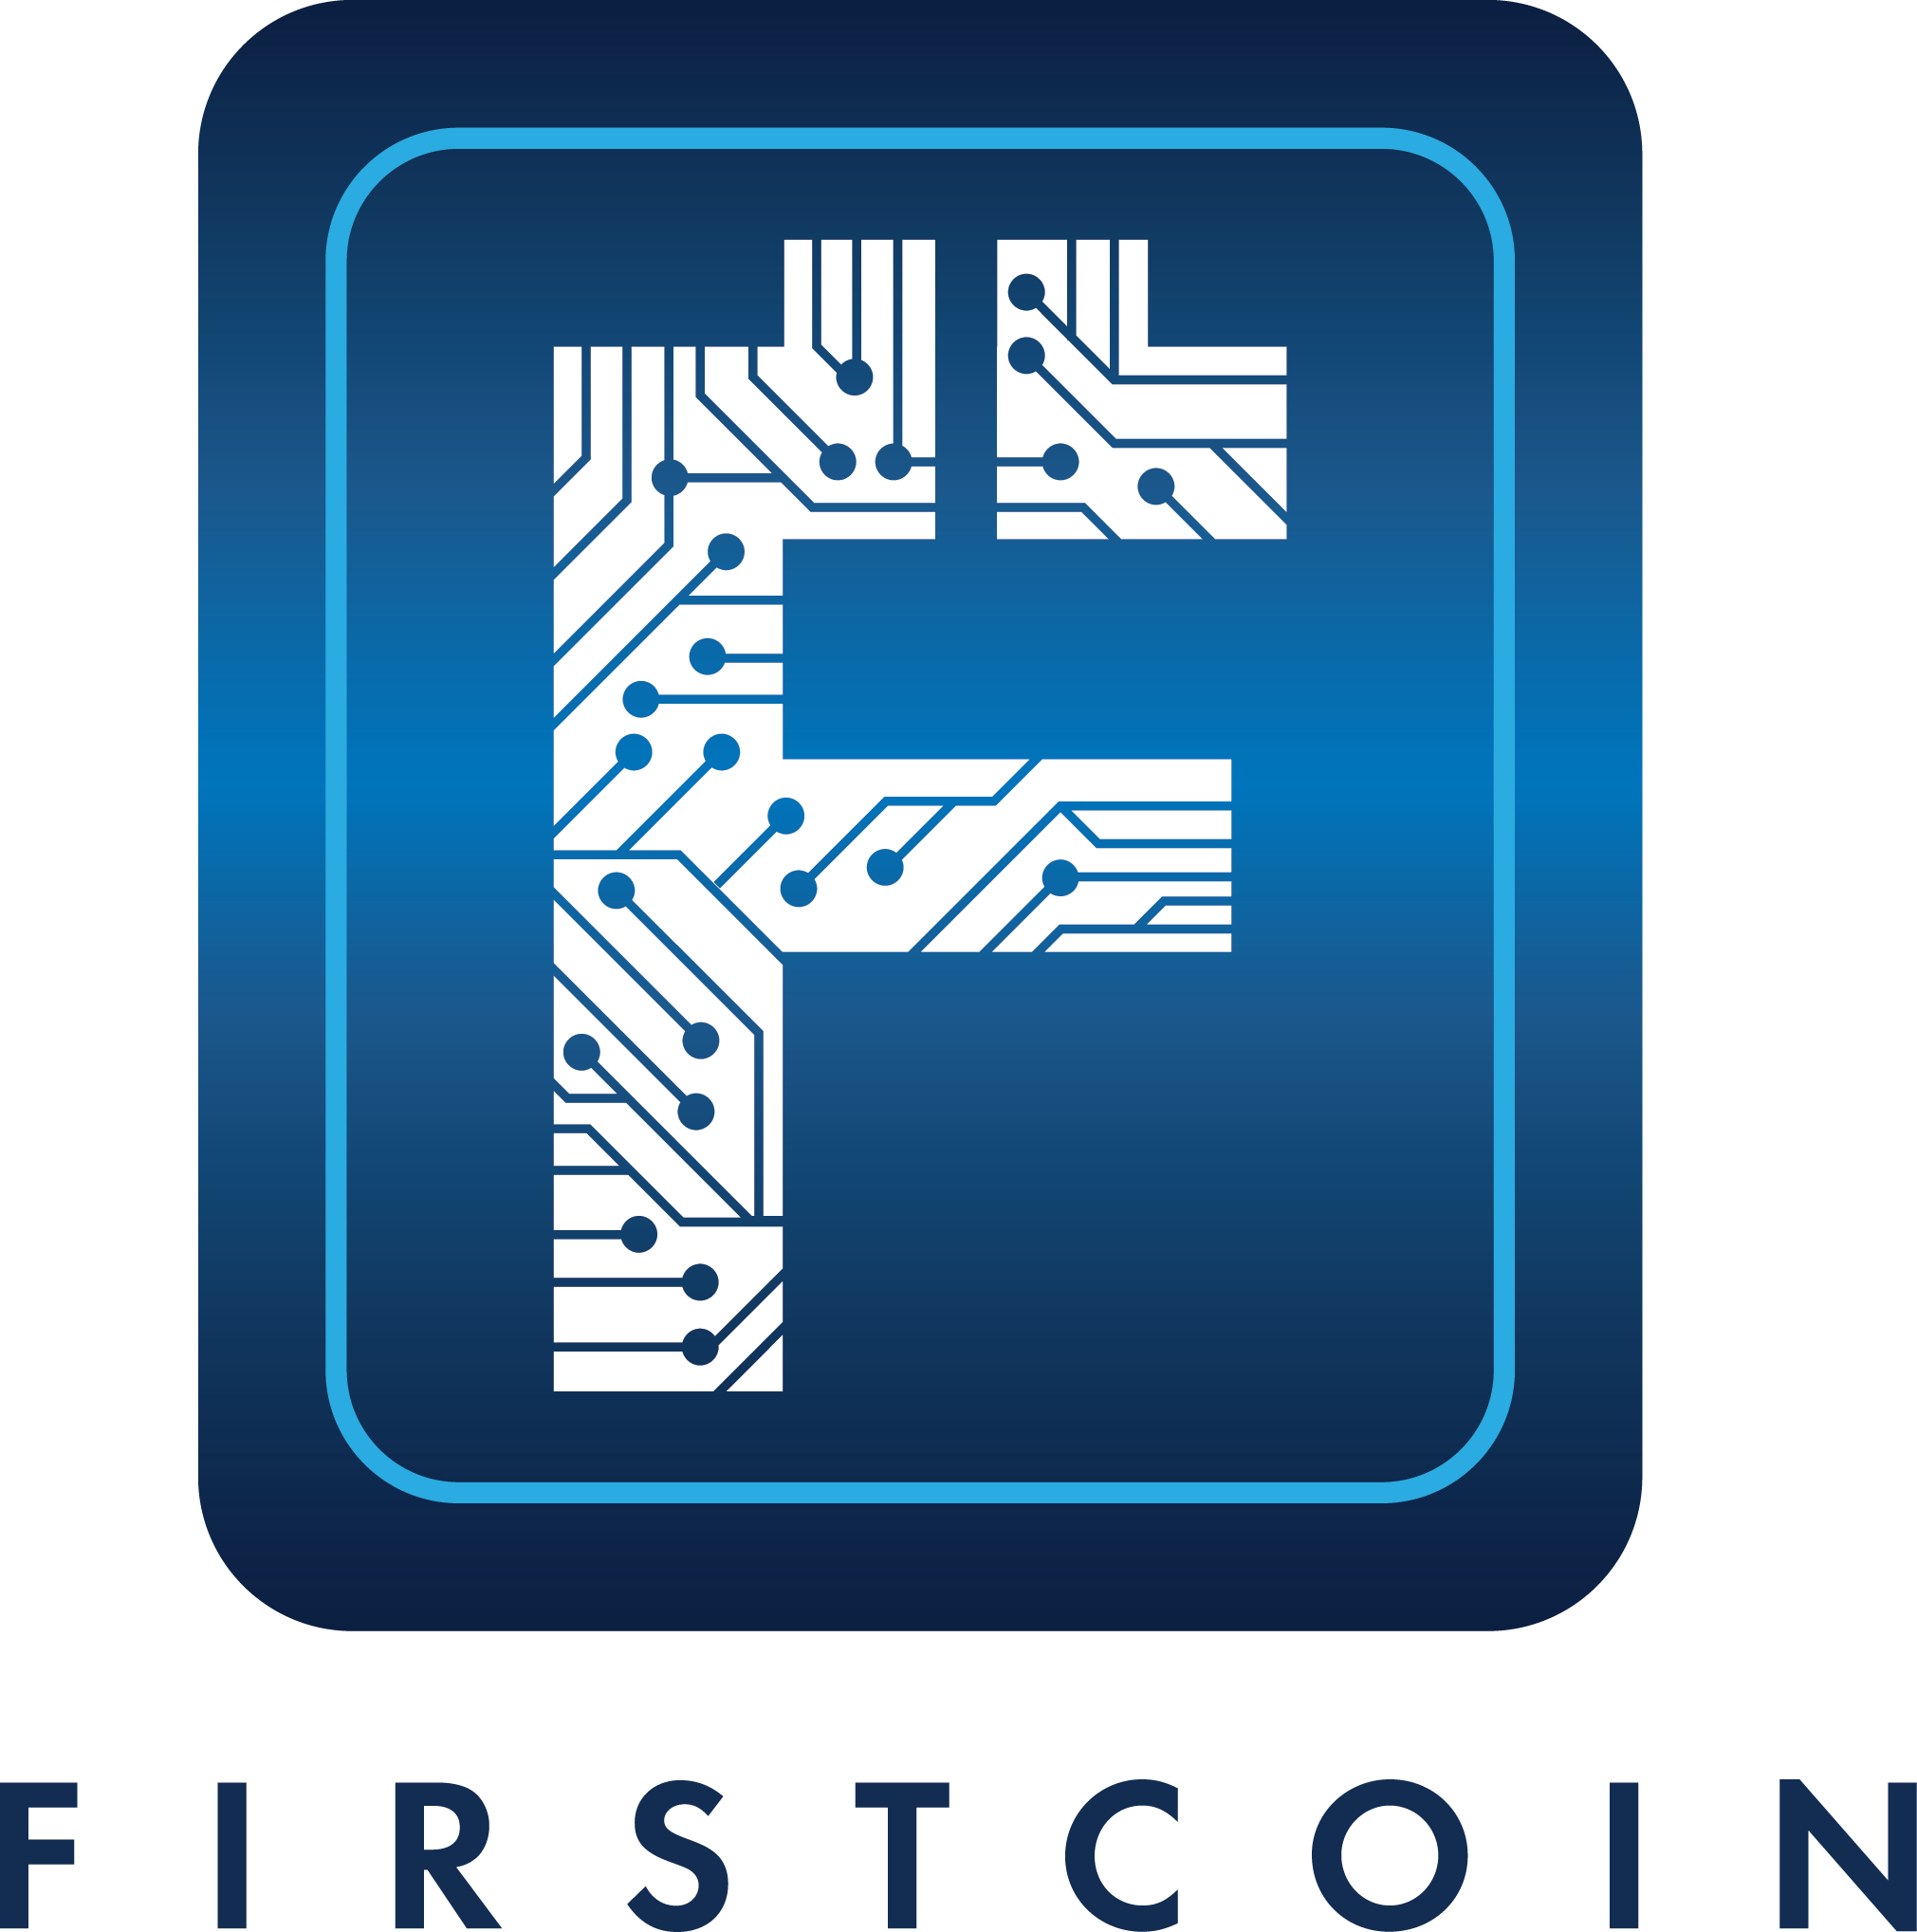 logo FIRSTCOIN.jpg